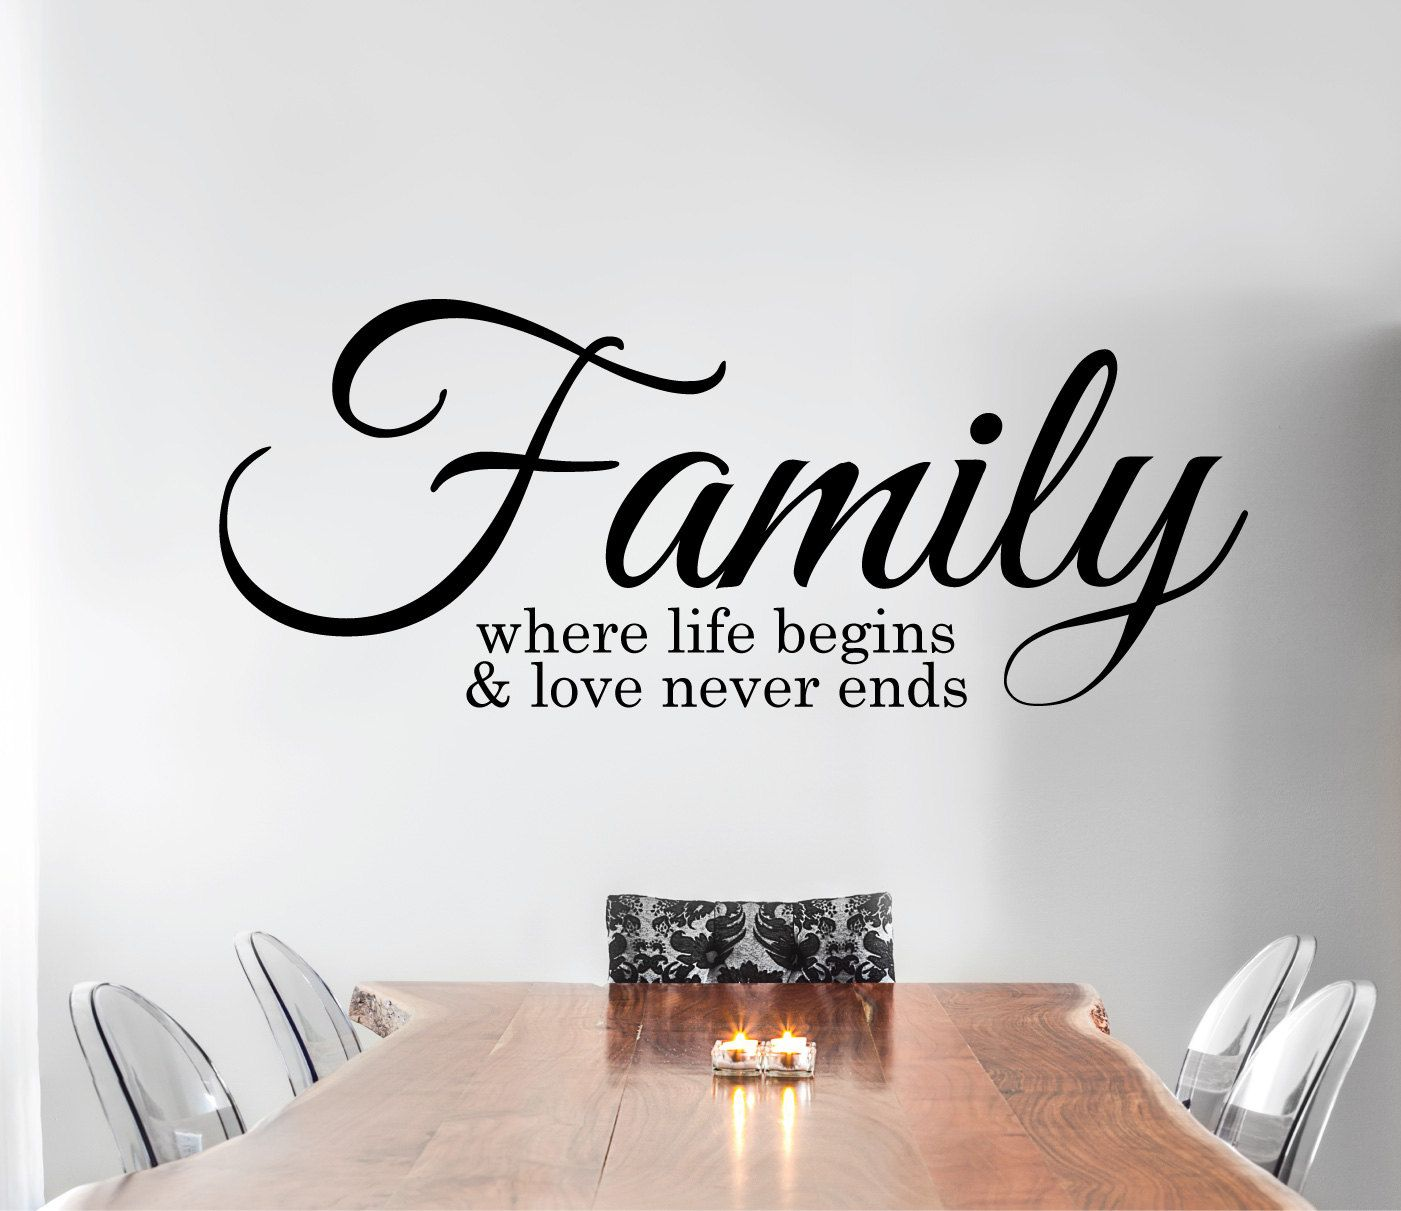 Family Wall Sticker Quote Family Where Life Begins And Love Never Ends L Family Wall Decal Quote Saying Home Wall Decor Family Wall Decals Family Wall Decals Quotes Wall Stickers Quotes